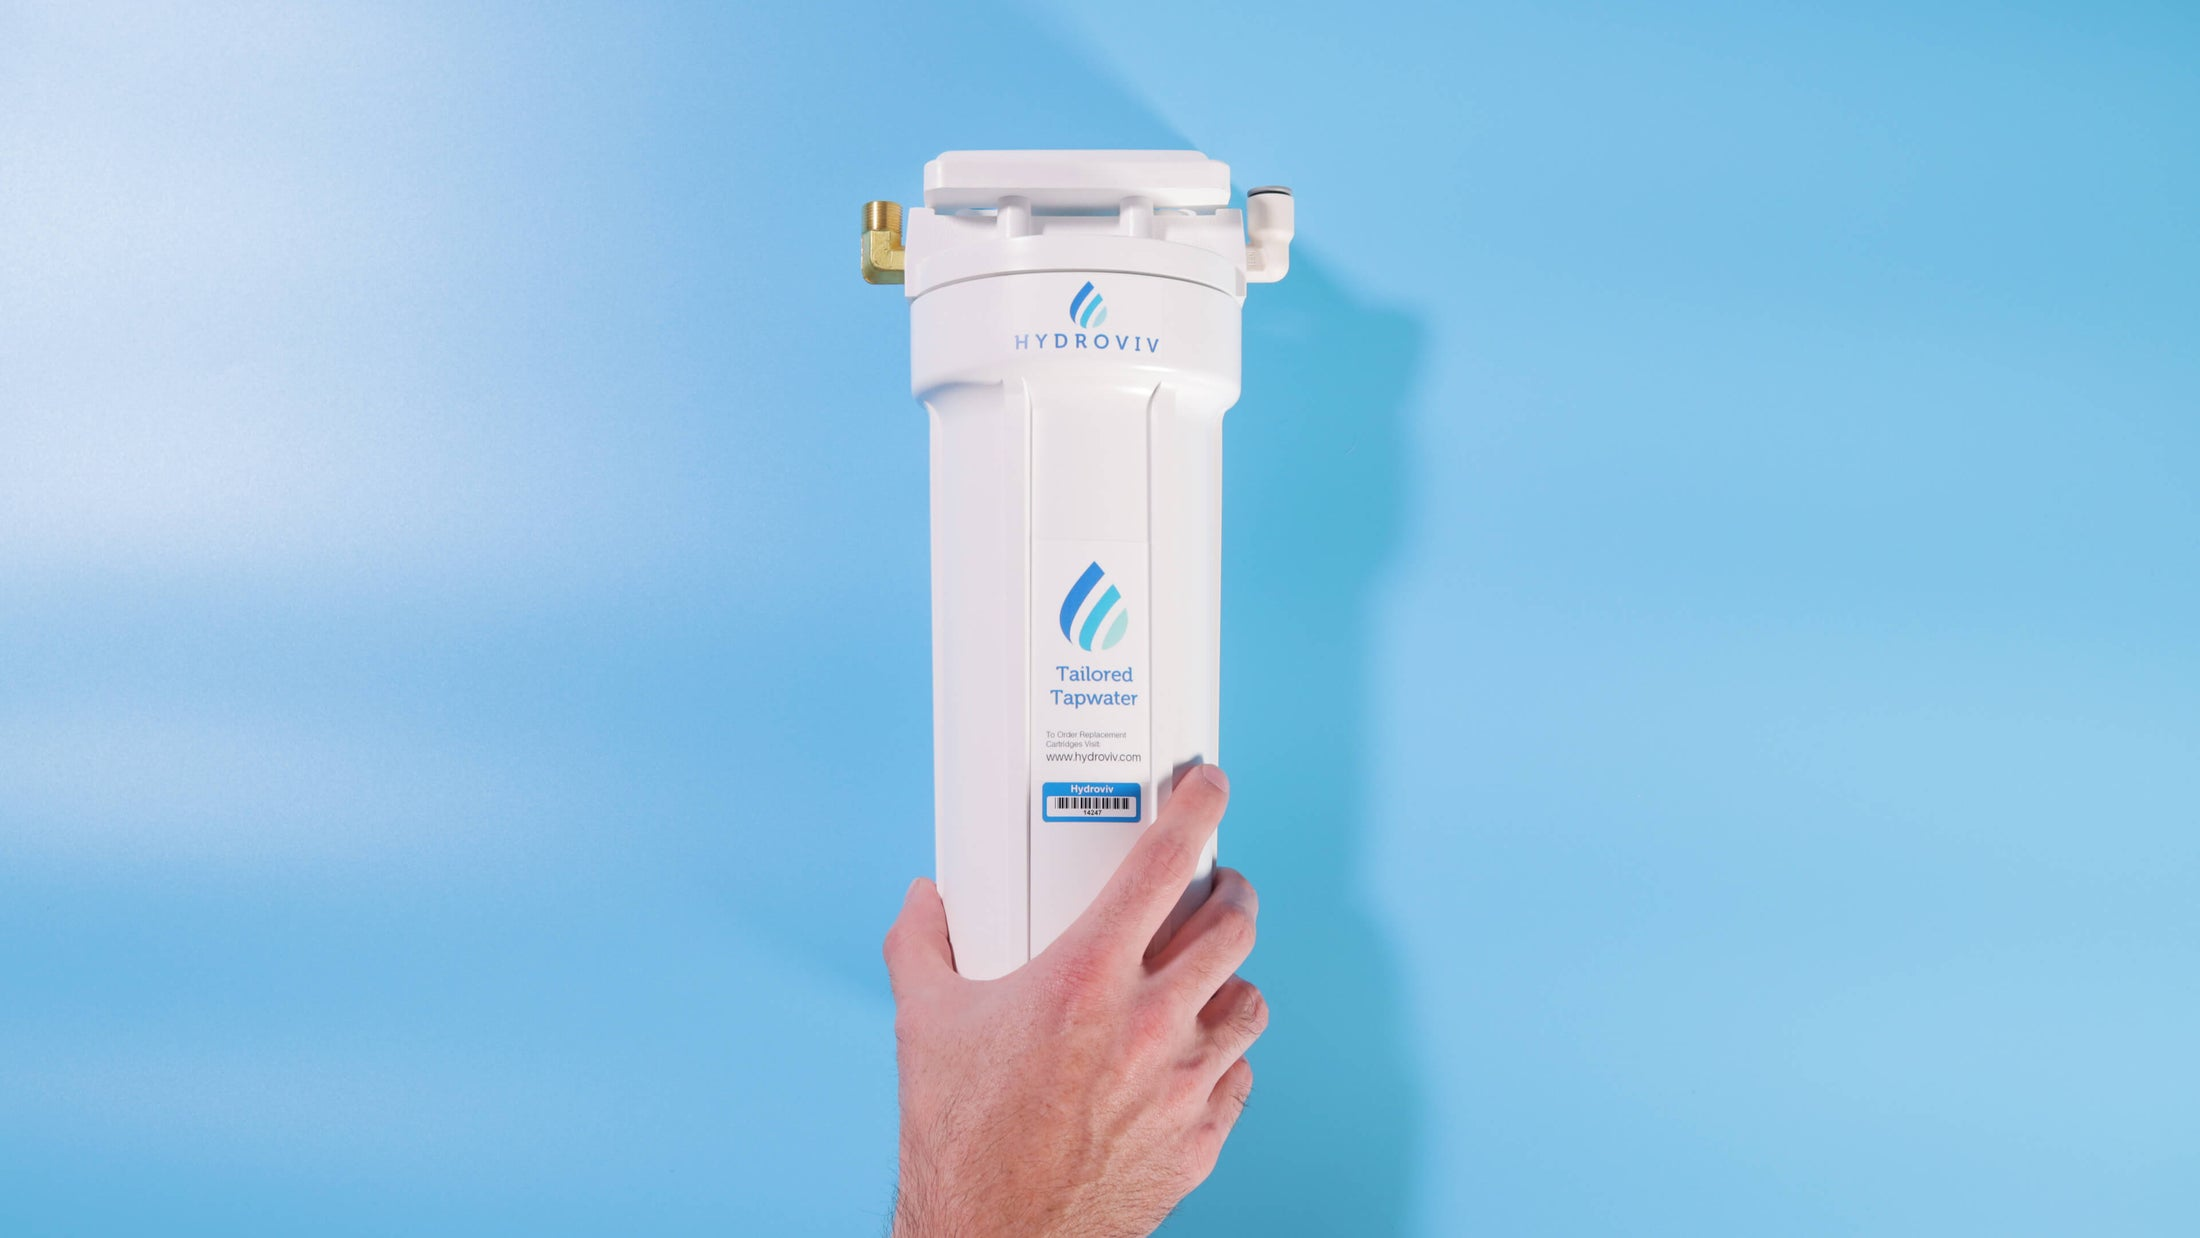 Hydroviv Under Sink Water Filter (Connects To Your Faucet)